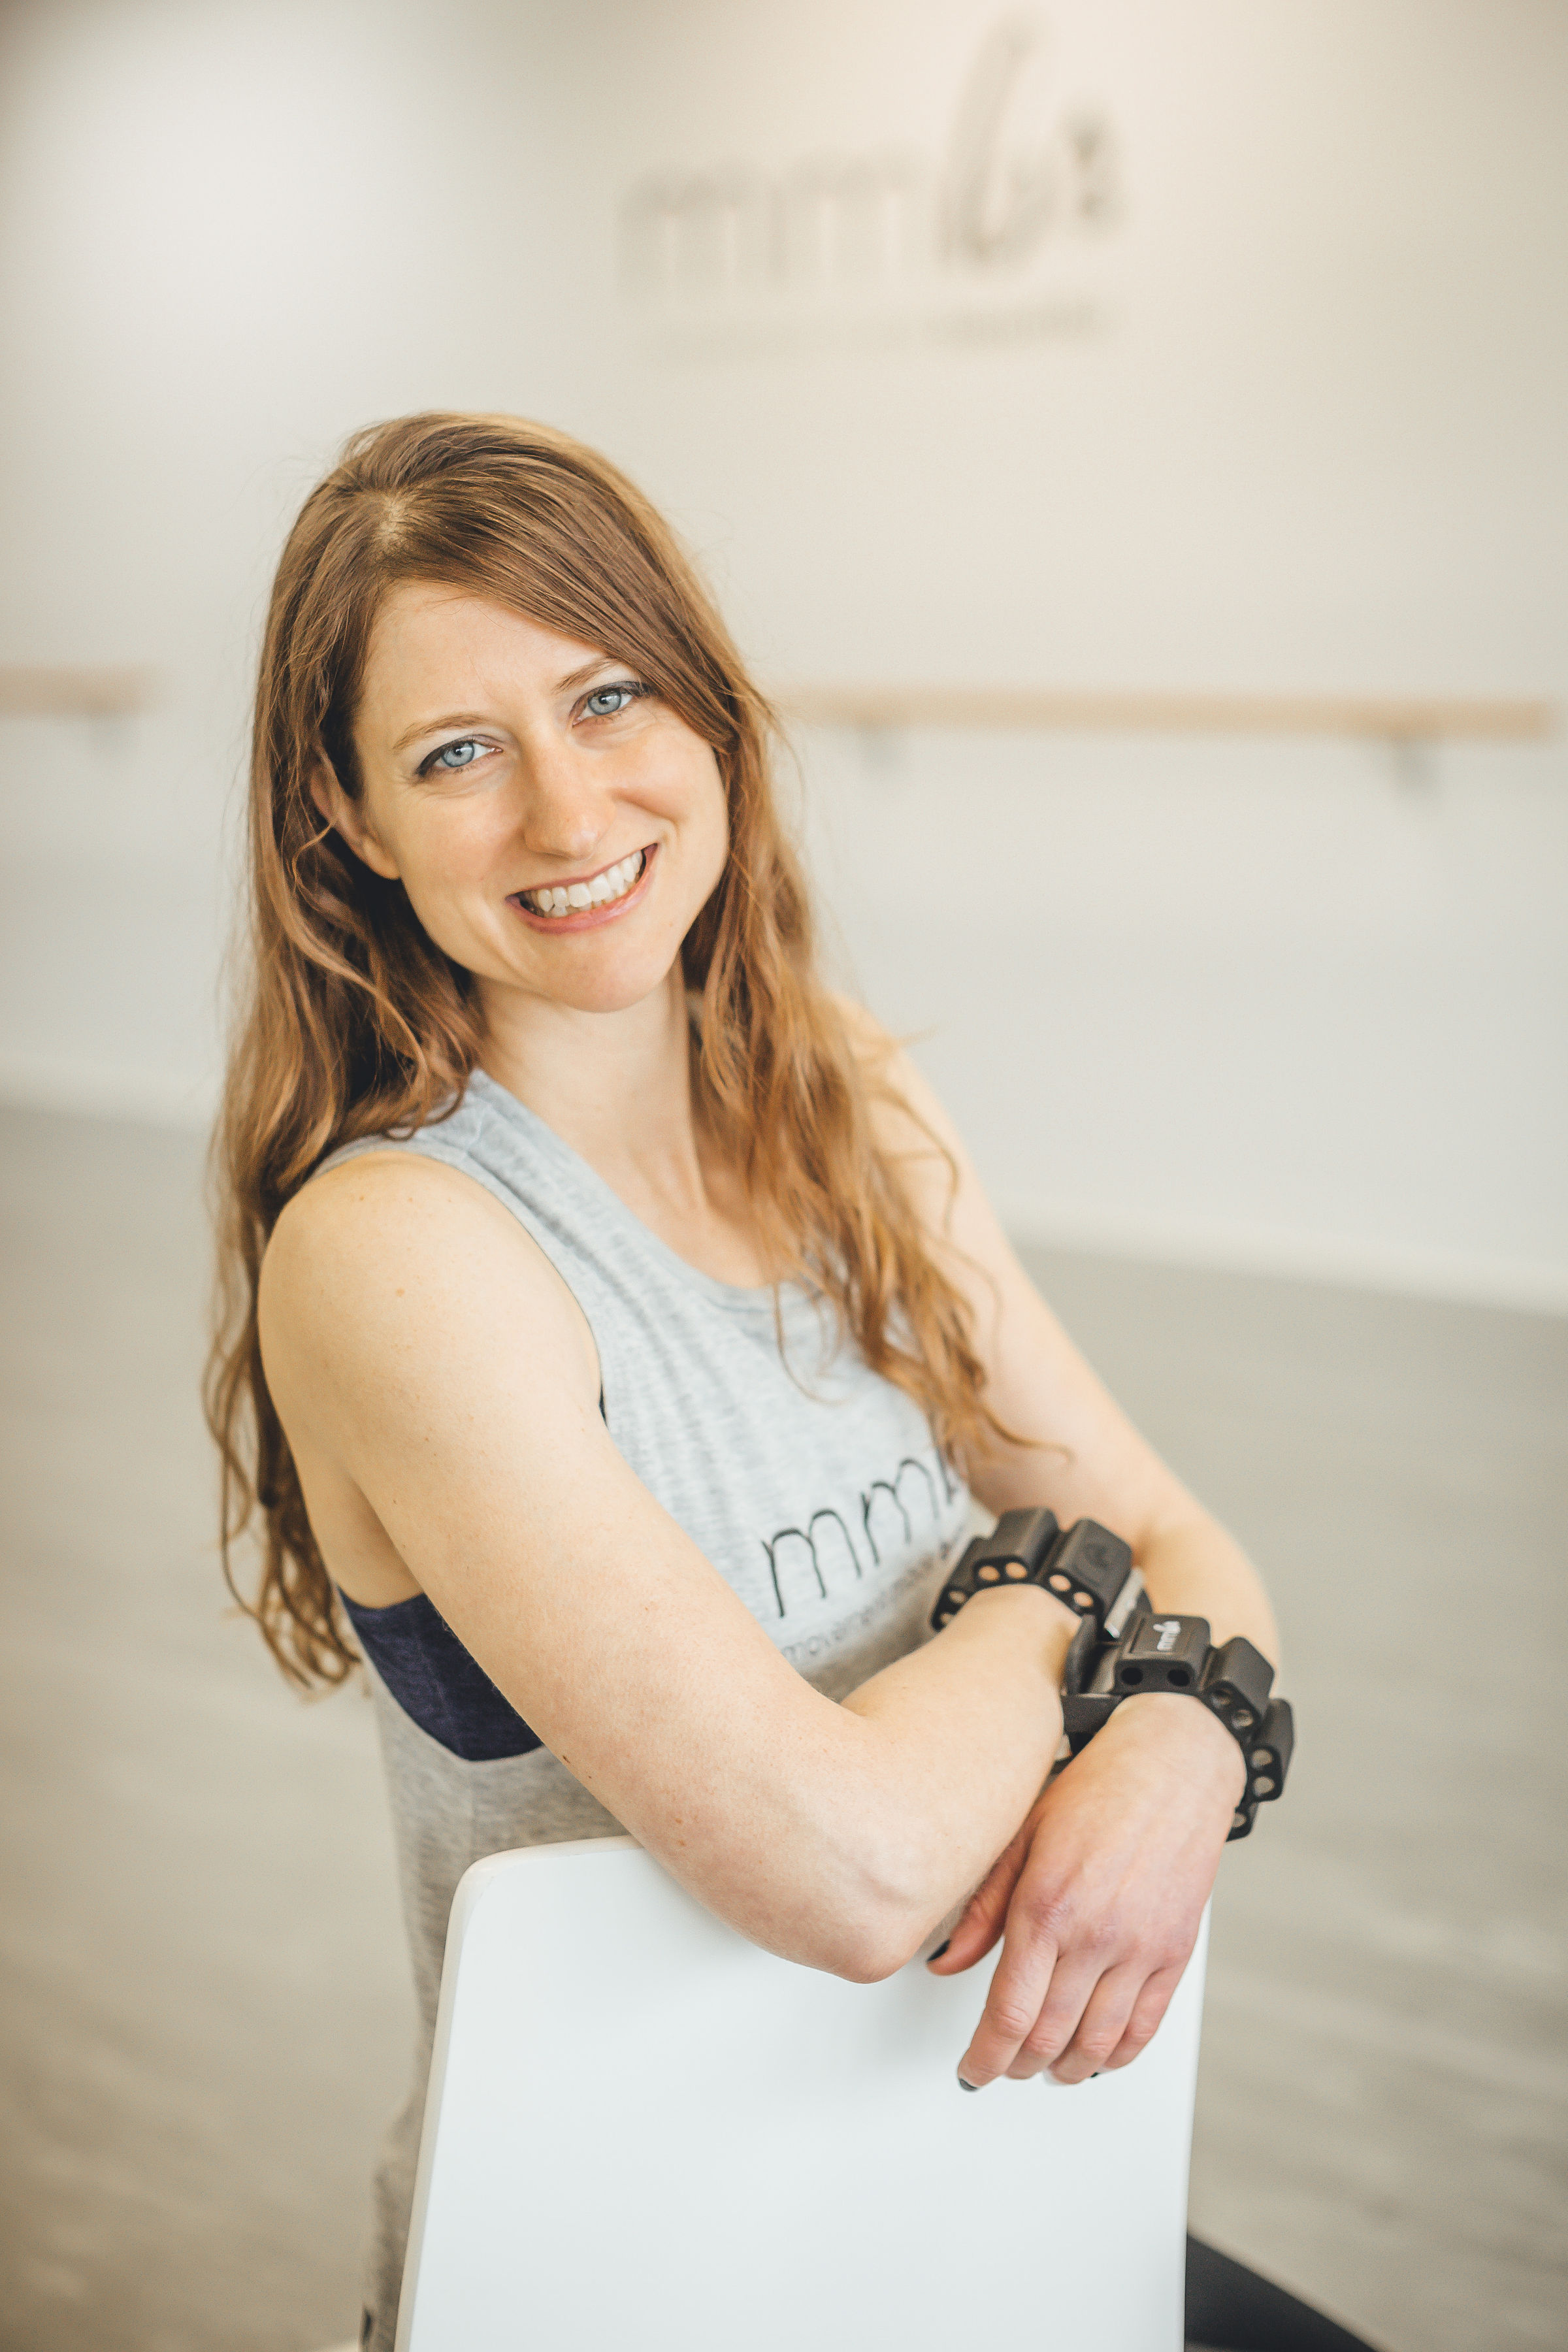 Sara Maloney-Instructor of Cardio Dance and Barre-Sculpt. Sara is also a Vegan and a librarian! Her creativity and intelligence are beautifully integrated in the choreography she chooses to teach.